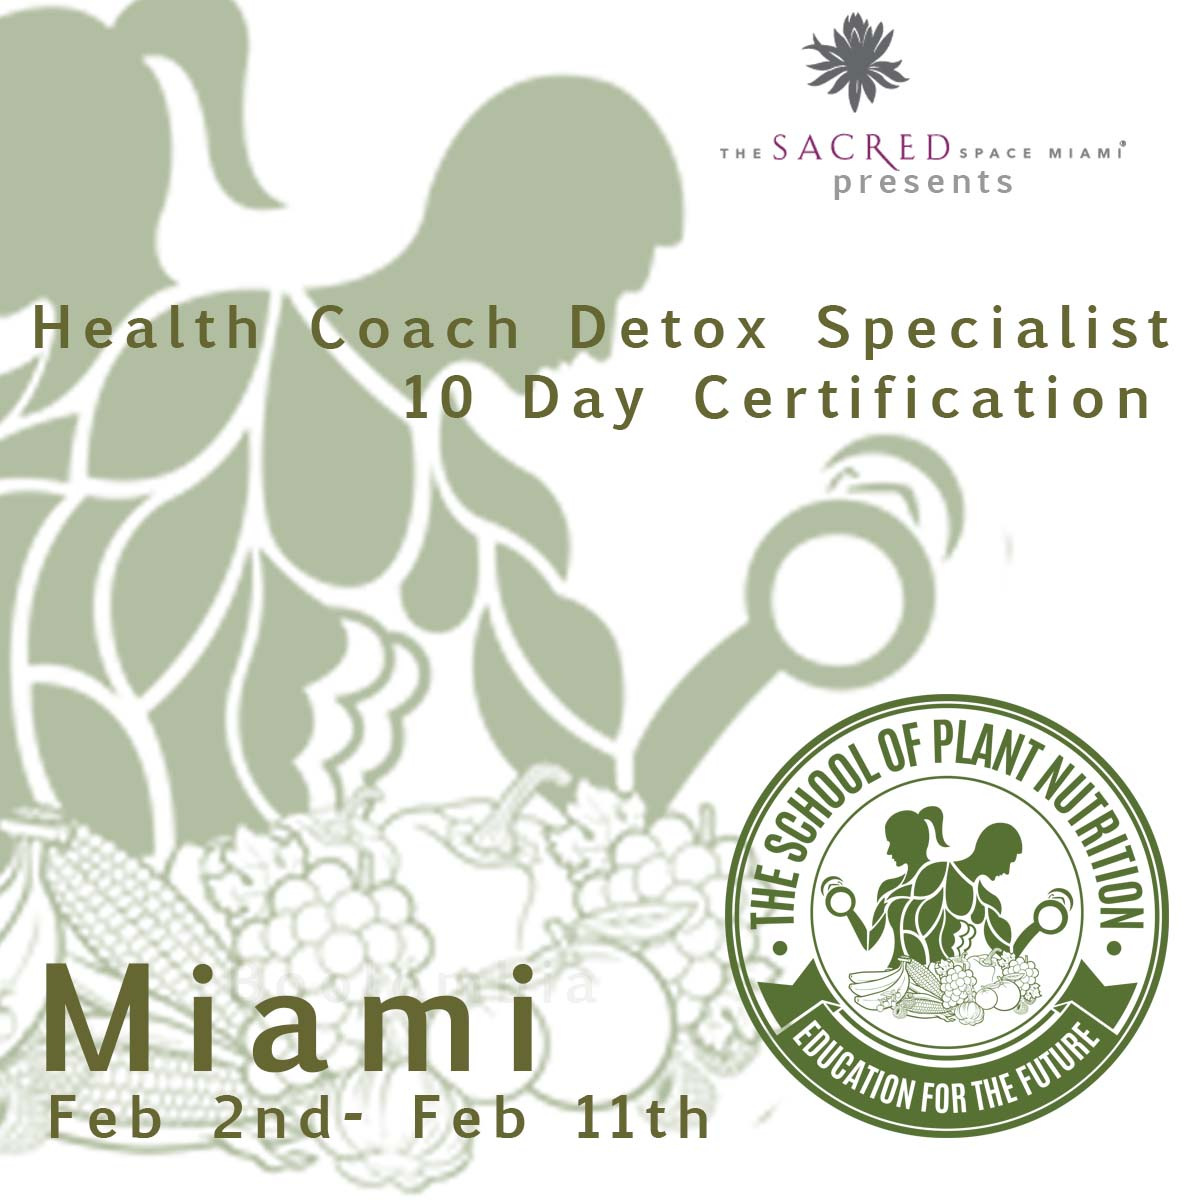 School of plant nutrition health coach certification school of plant miami certification xflitez Images